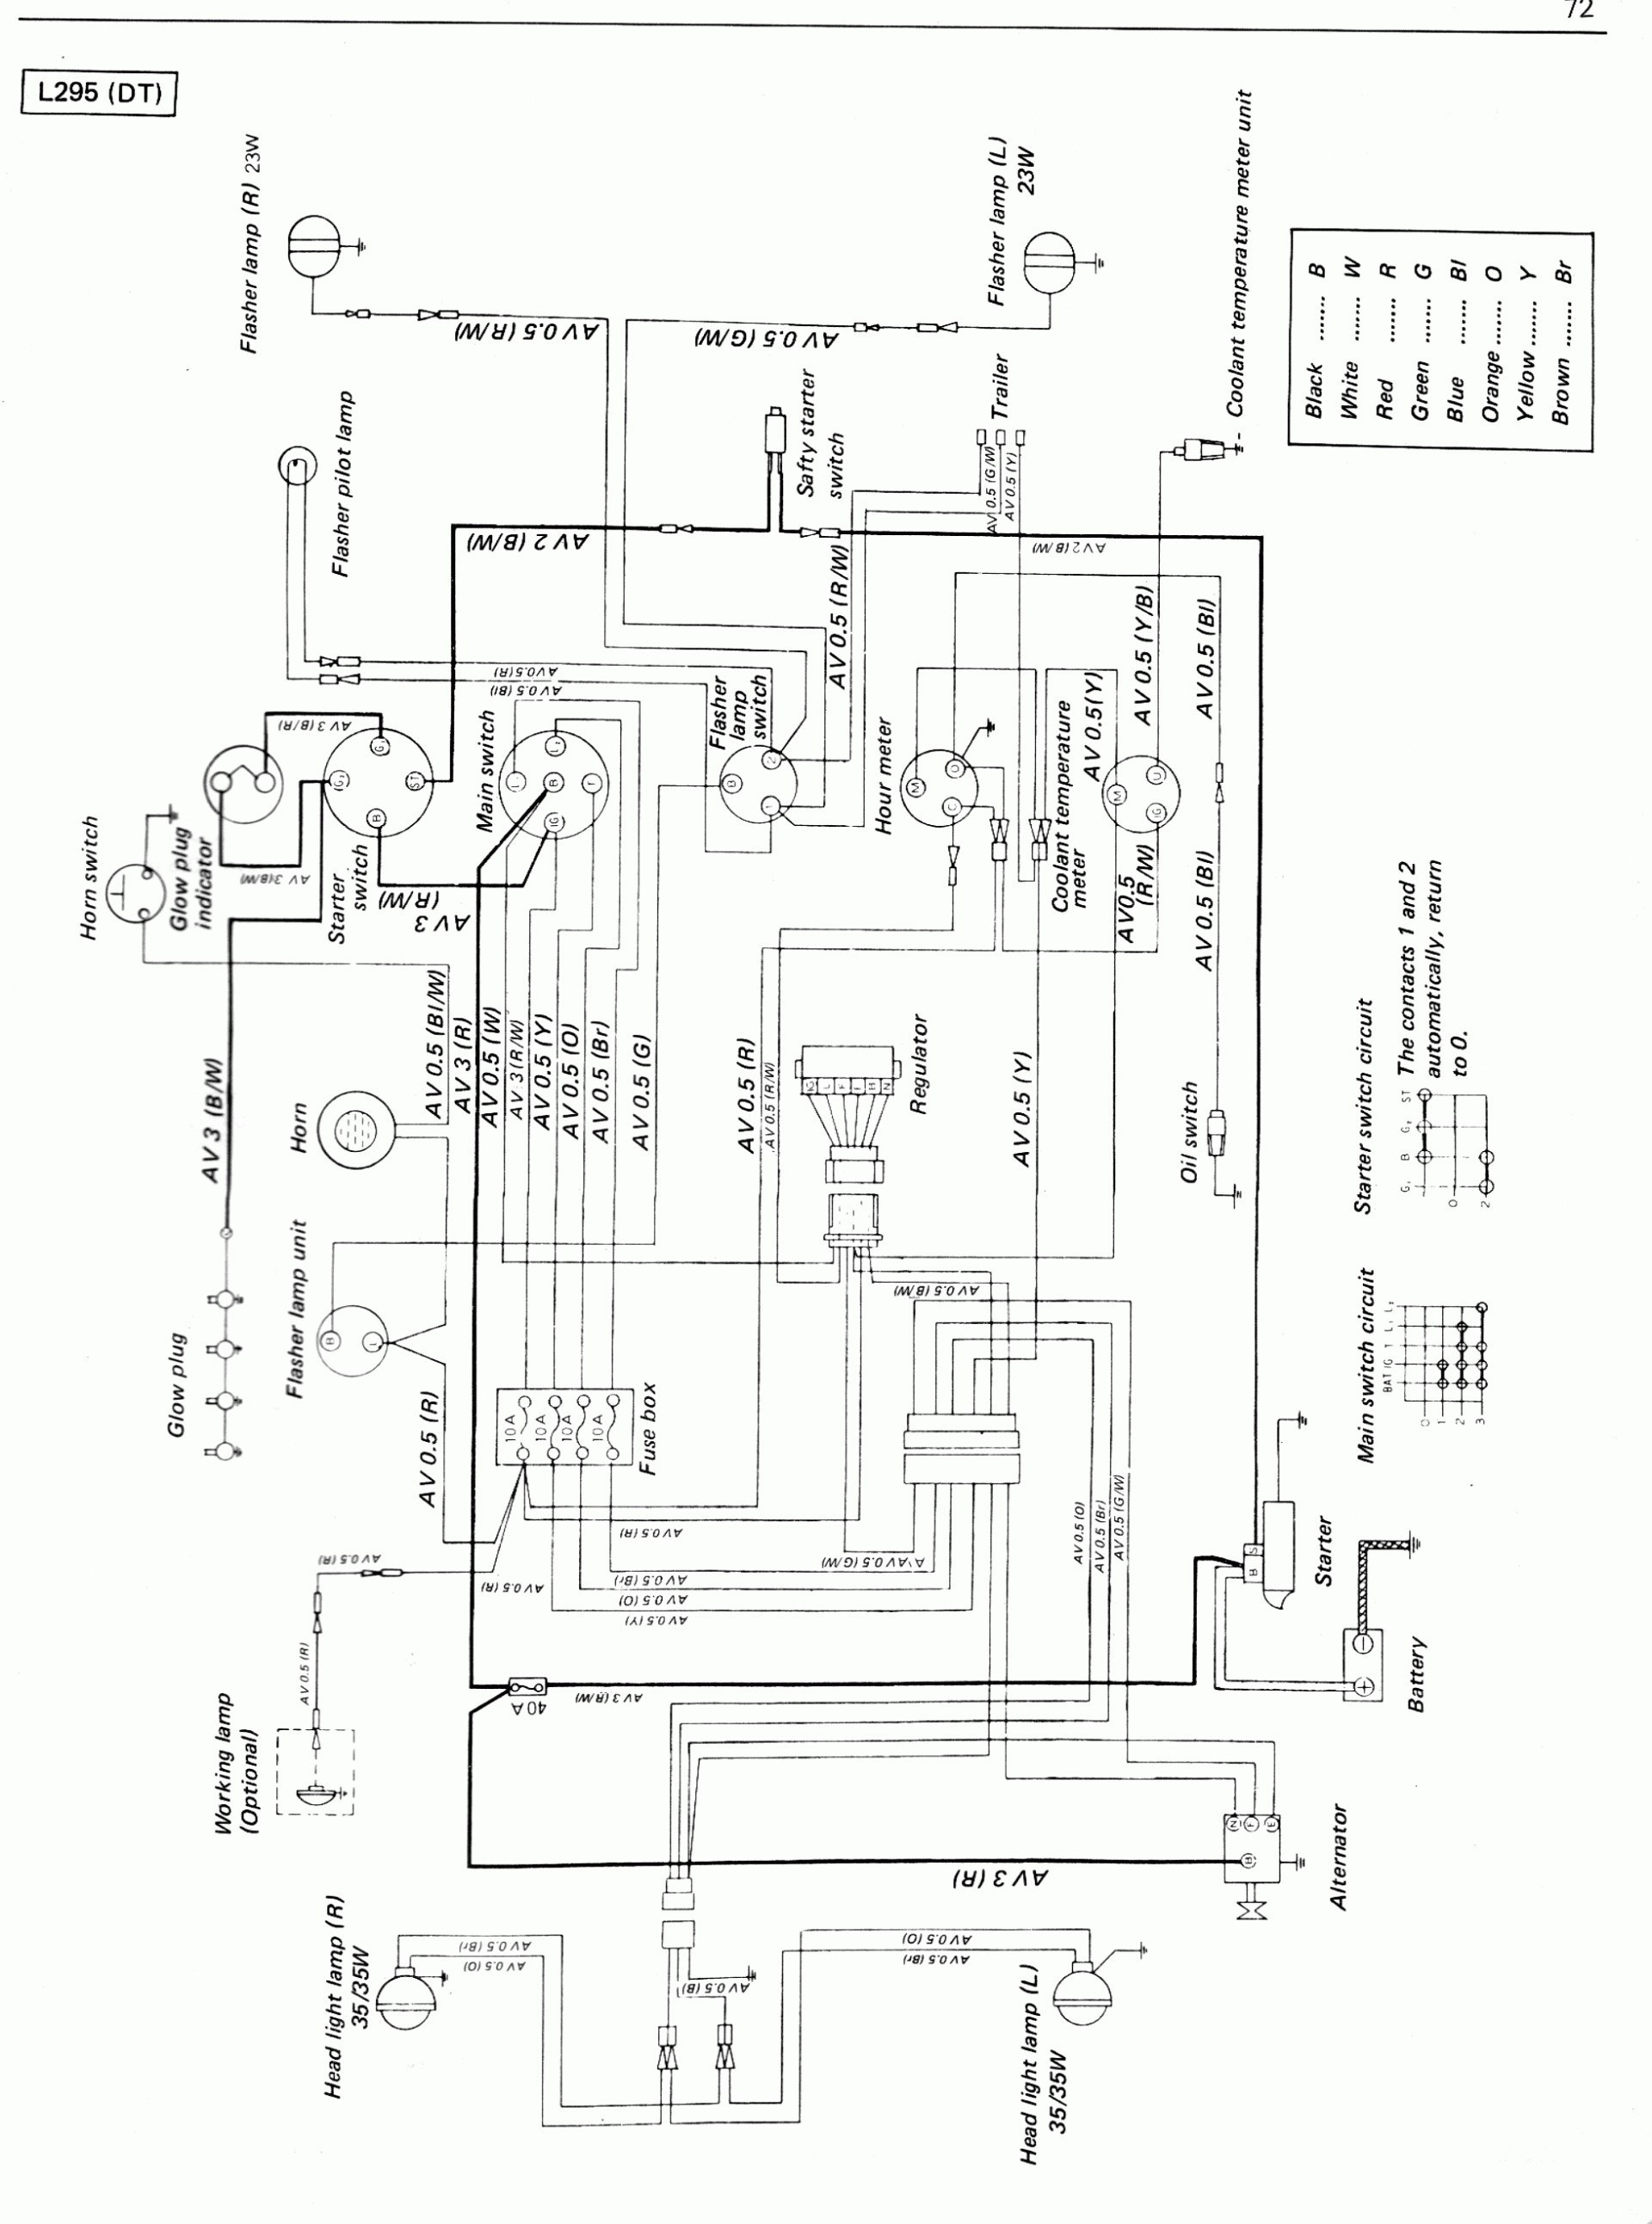 Kubota Schematics | Manual E-Books - Kubota B7800 Wiring Diagram